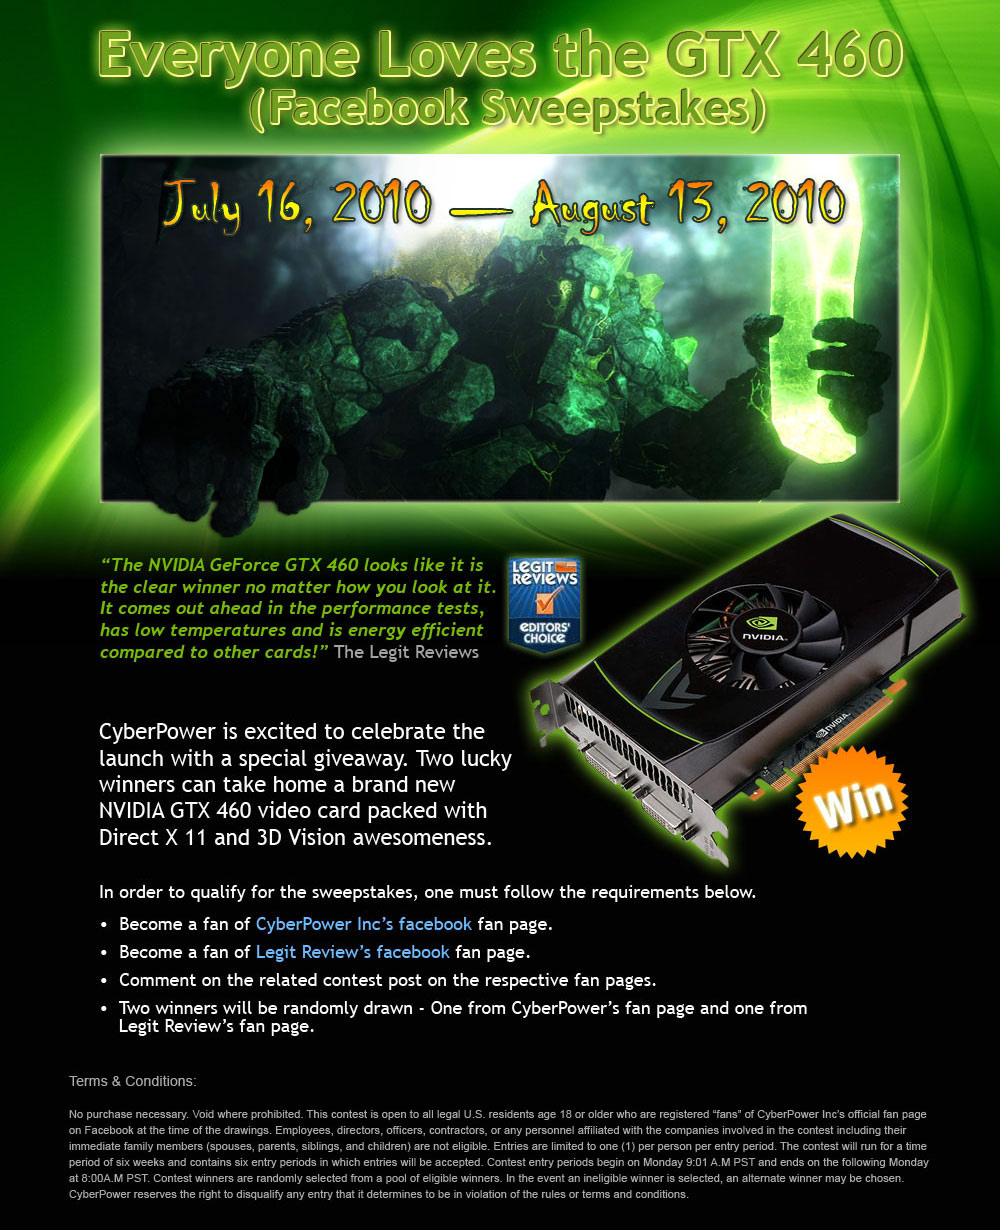 NVIDIA GeForce GTX 460 Facebook Fan Page Sweepstakes - Legit